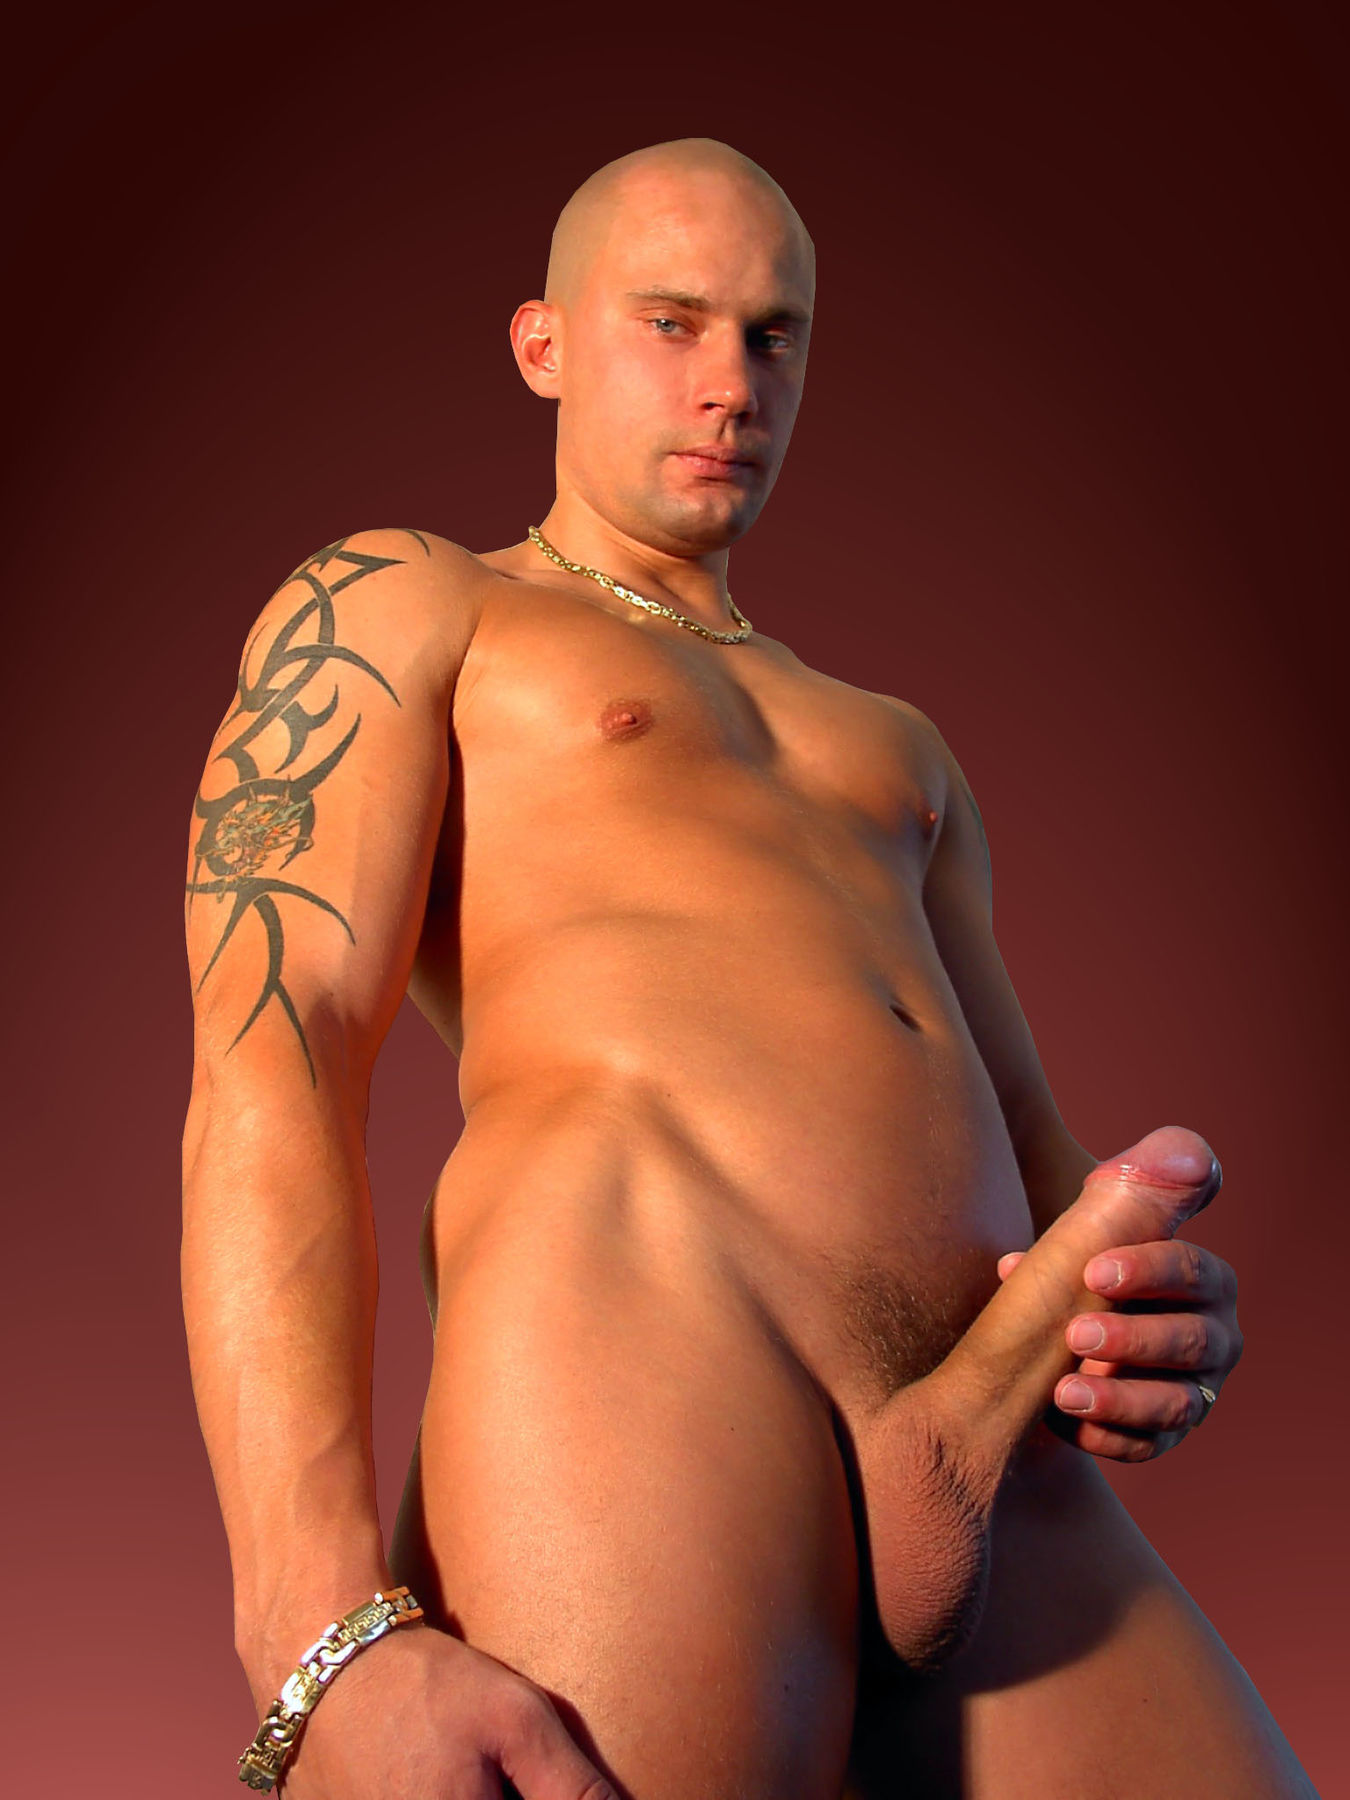 Russian male escorts michigan » Michigan » Detroit » Male Escort For Men